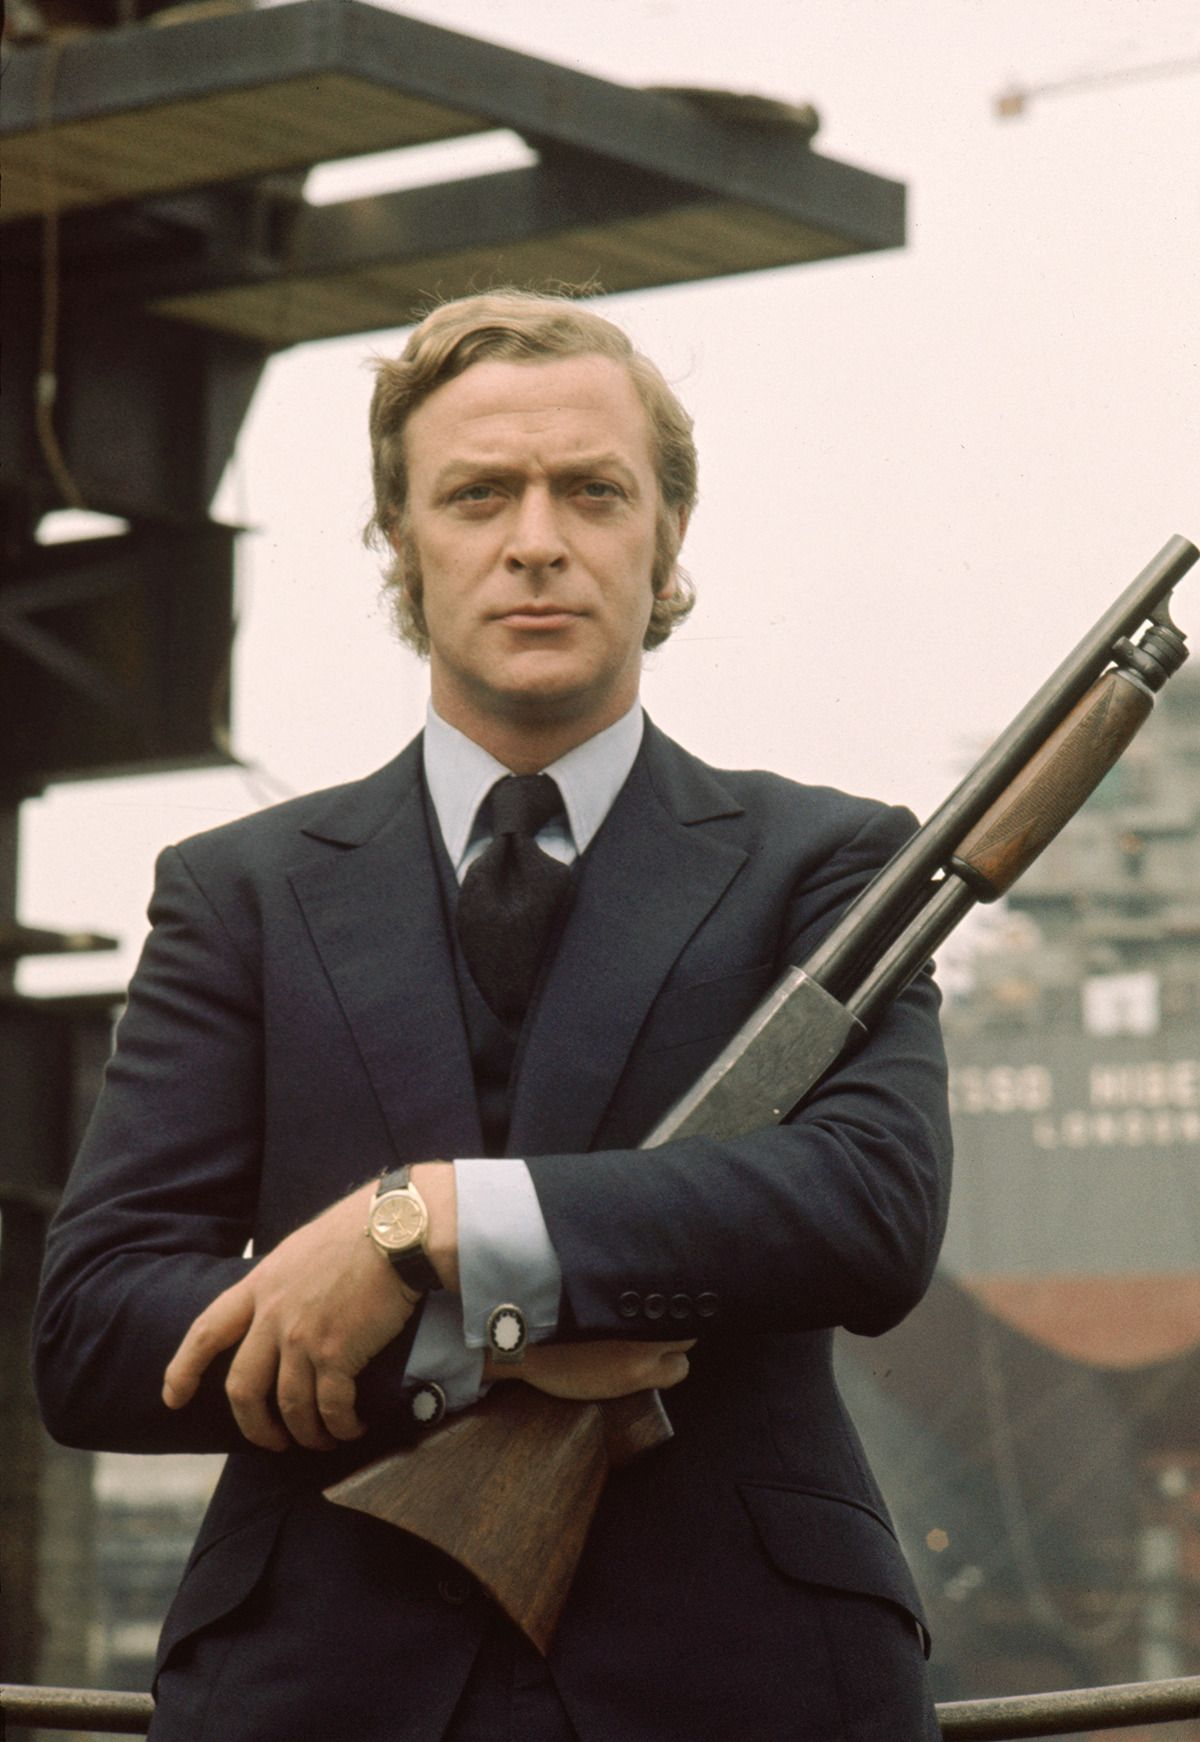 Get Carter (1971) Michael Caine.